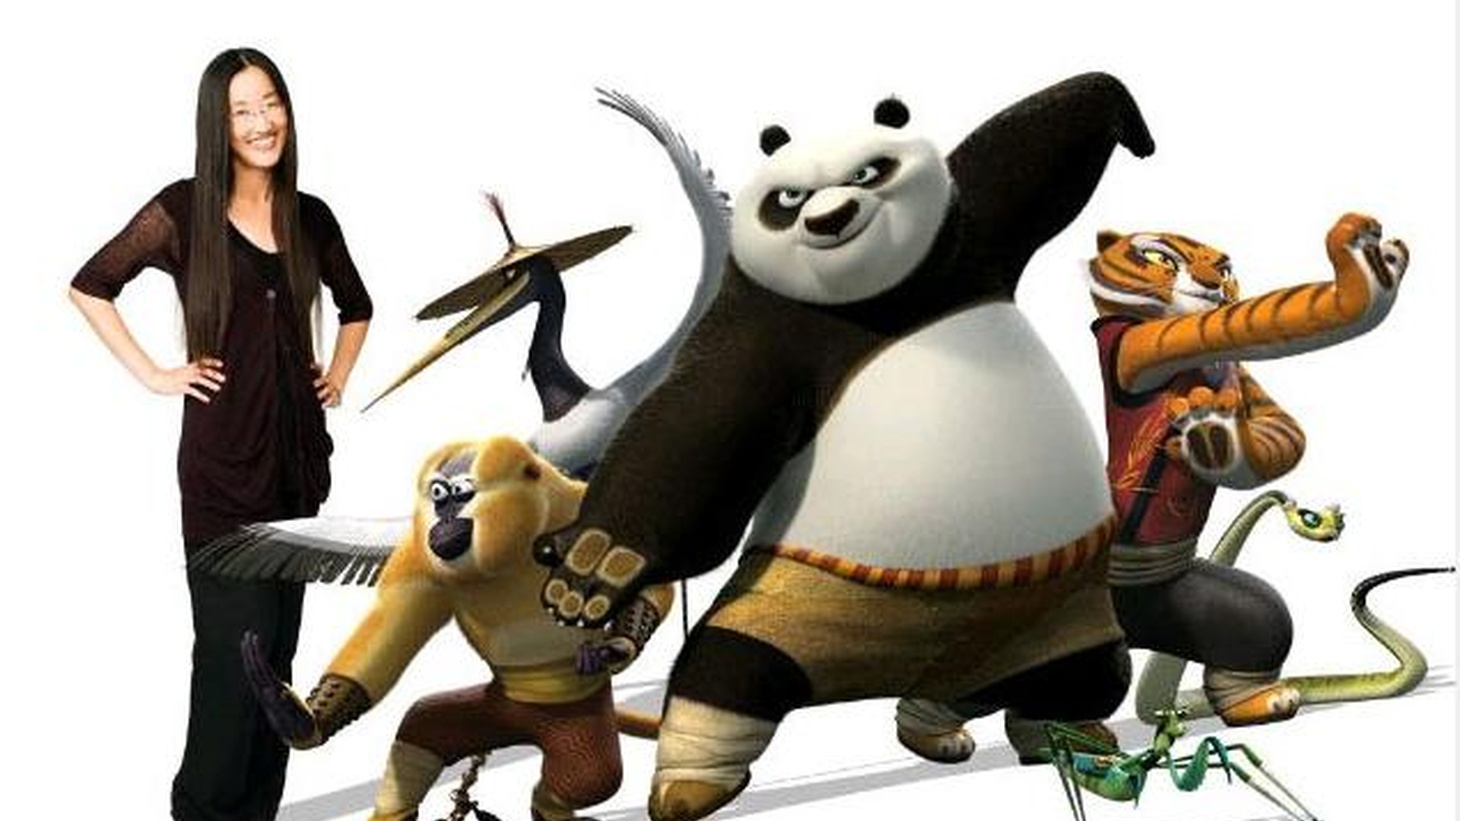 Jennifer Yuh Nelson has worked in animation with big emotional surprises hidden in action stories. She brings that interest to bear as director of Kung Fu Panda 2.